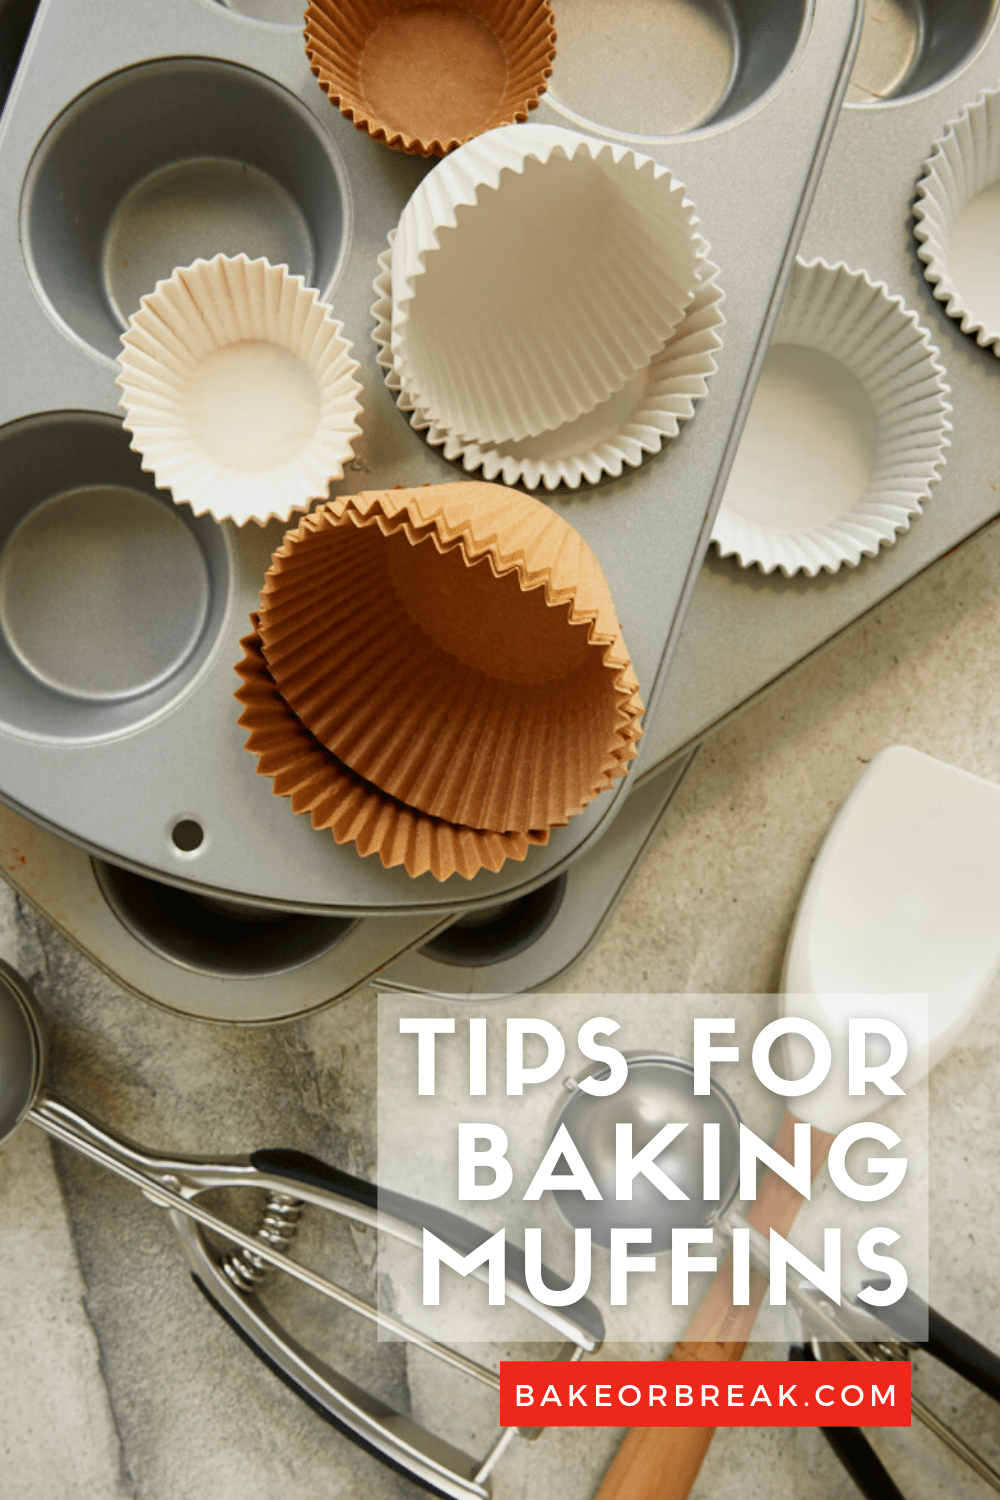 Tips for Baking Muffins bakeorbreak.com